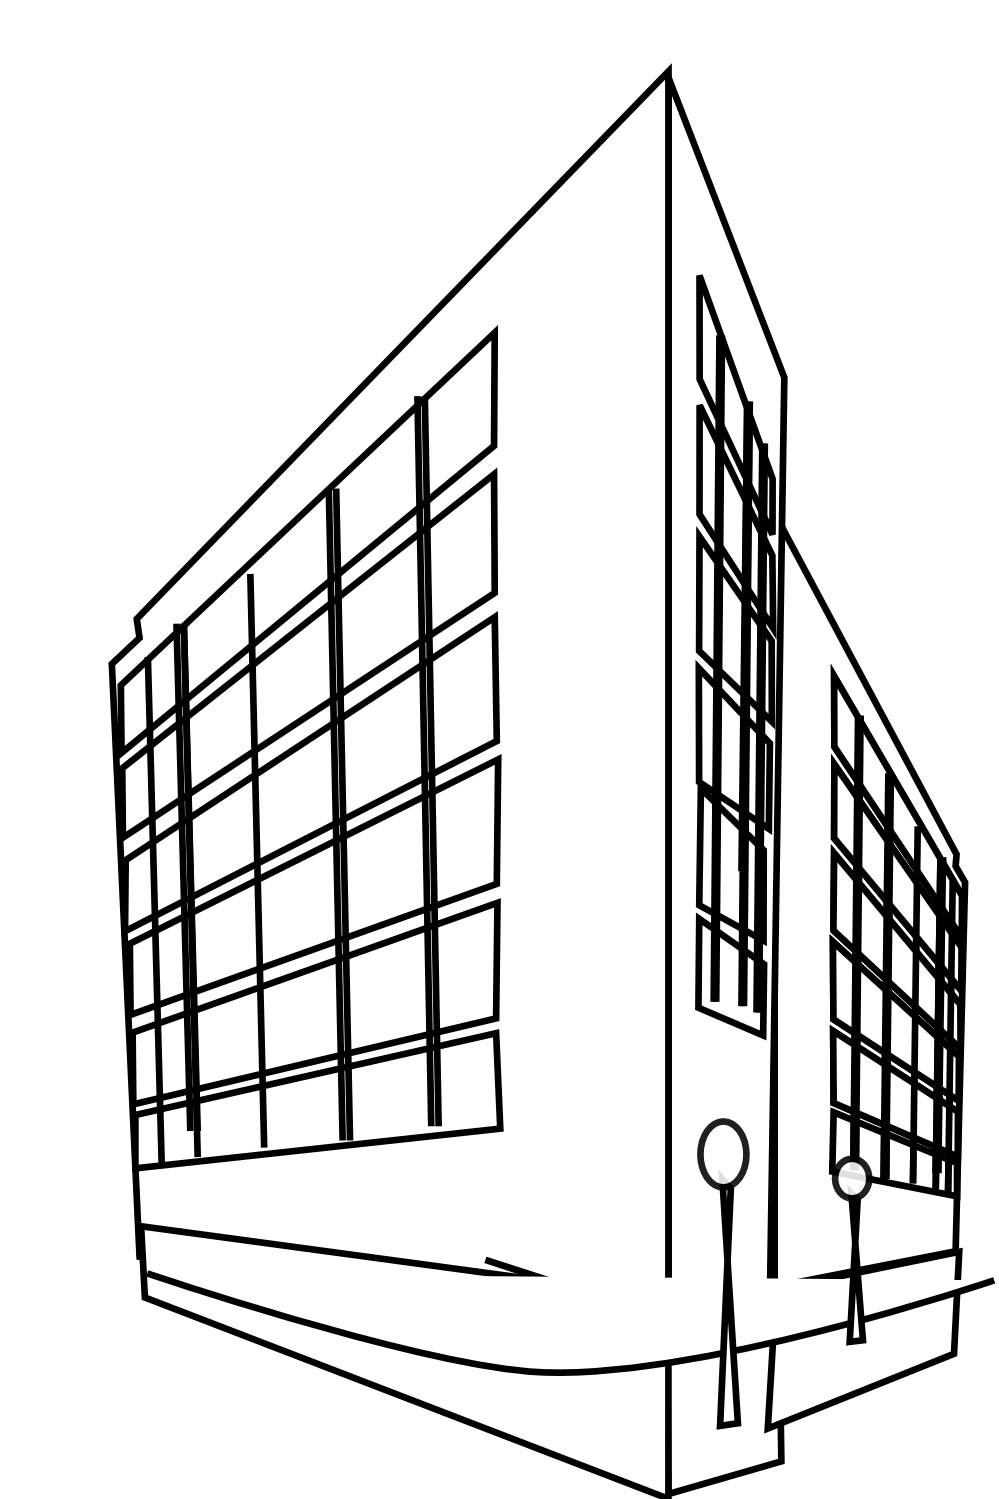 Building svg #9, Download drawings